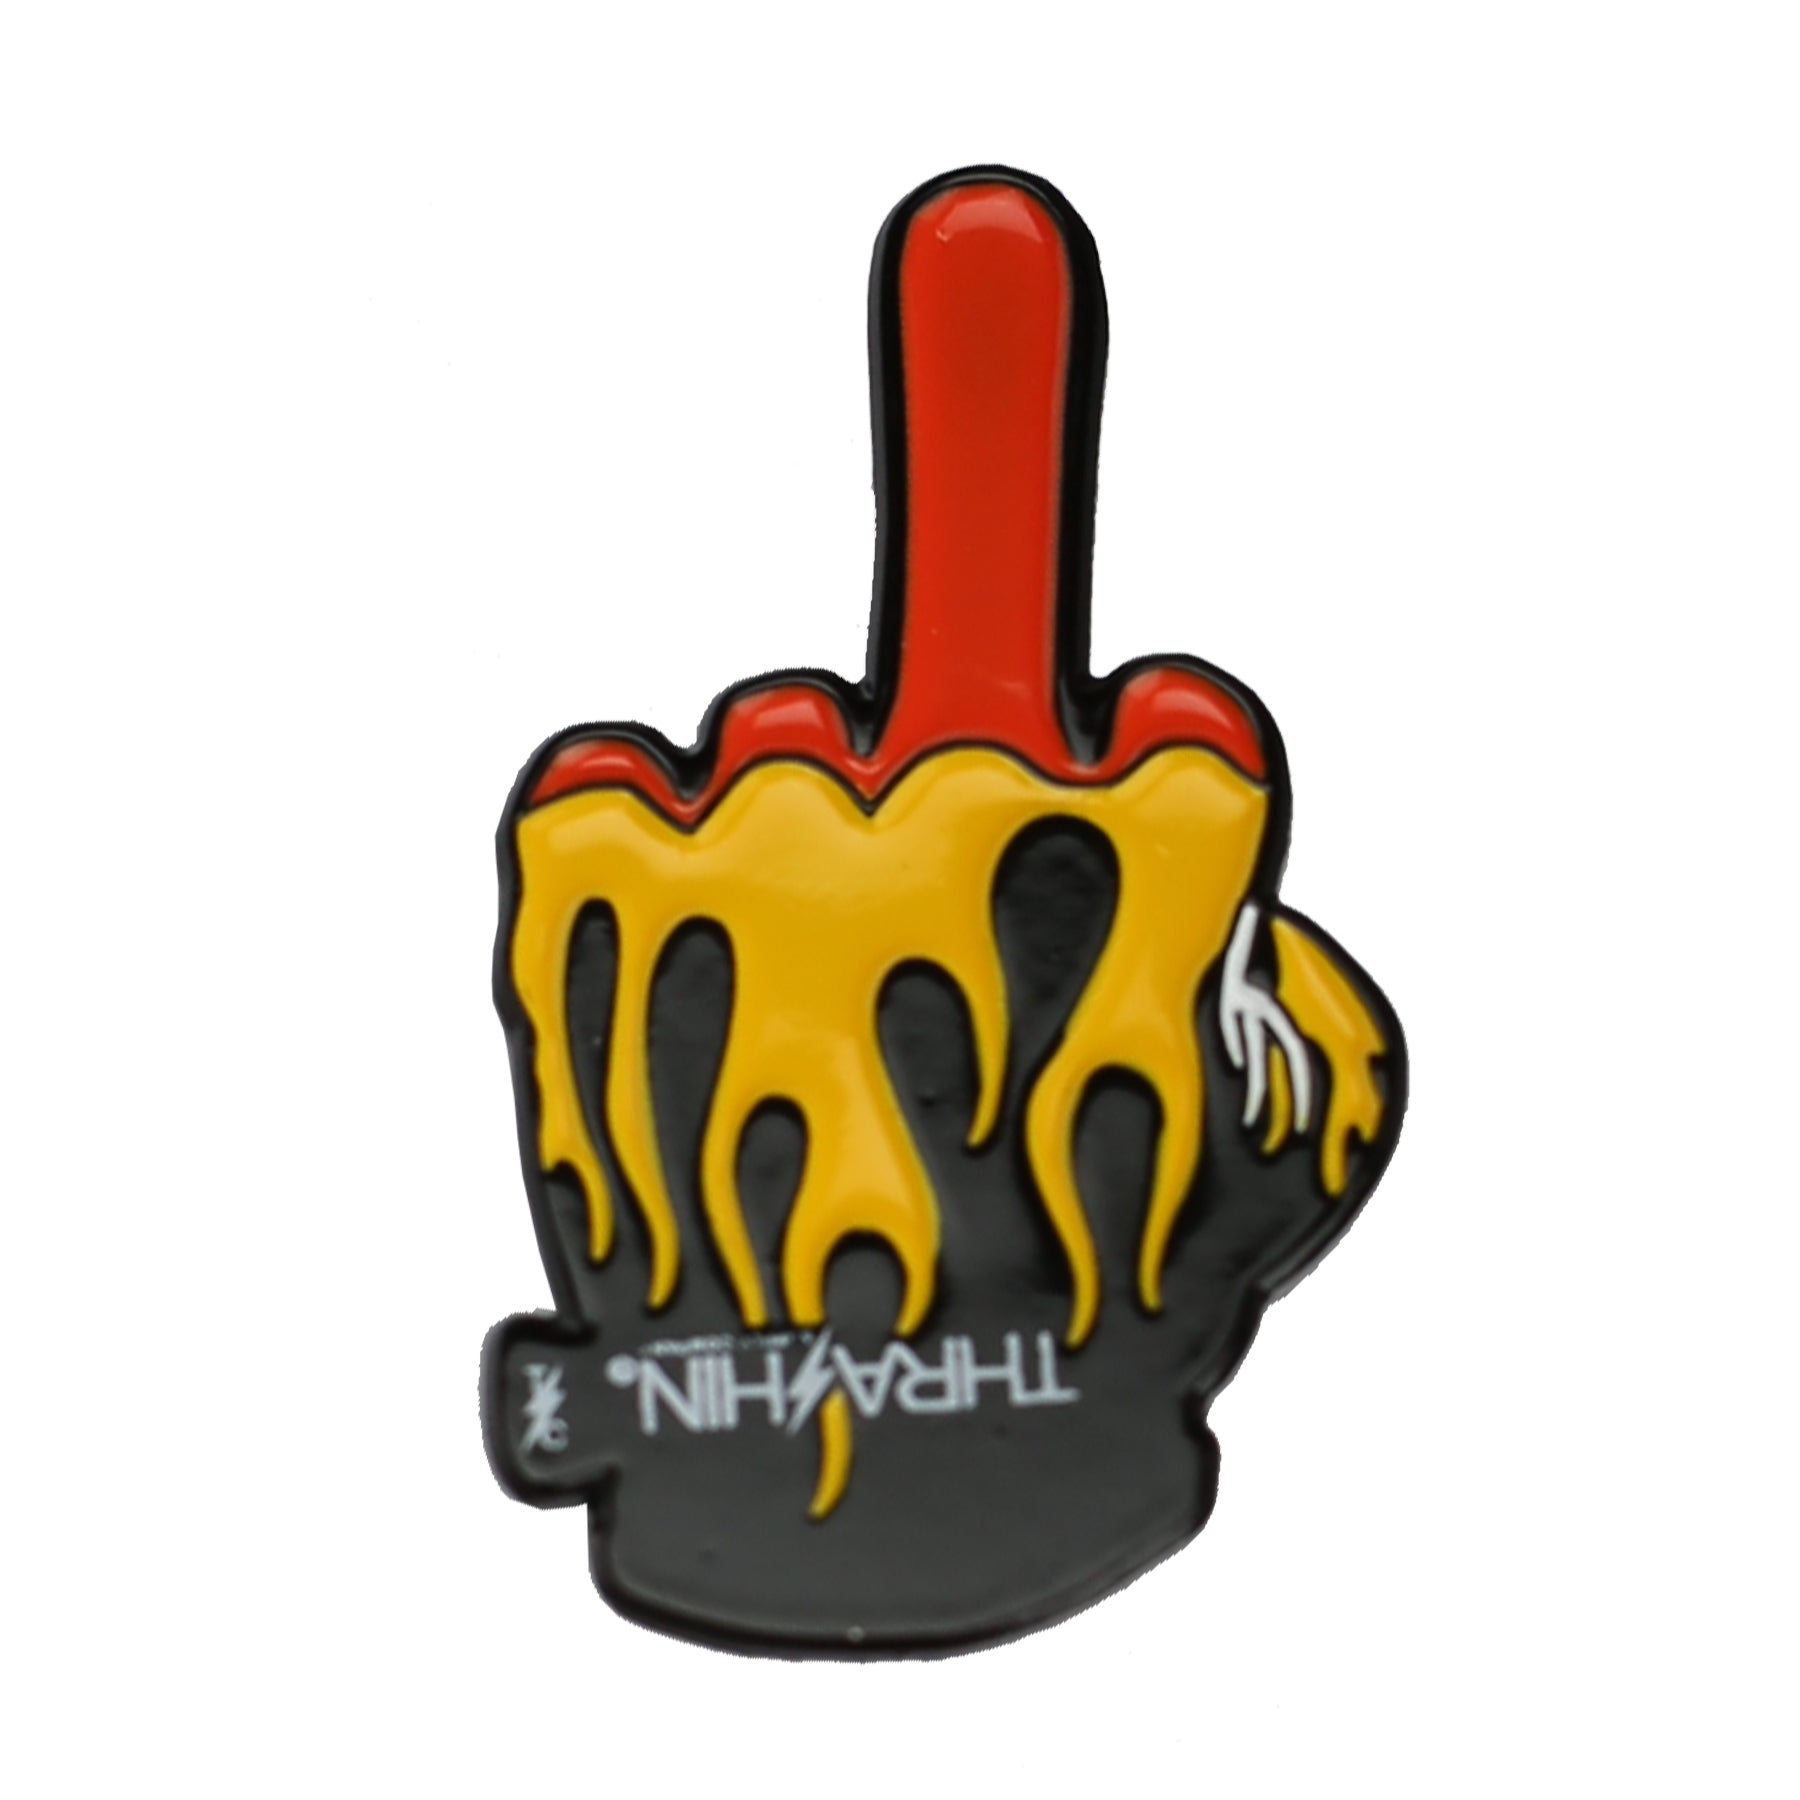 Middle Finger Flame Glove Emoji Lapel Pin